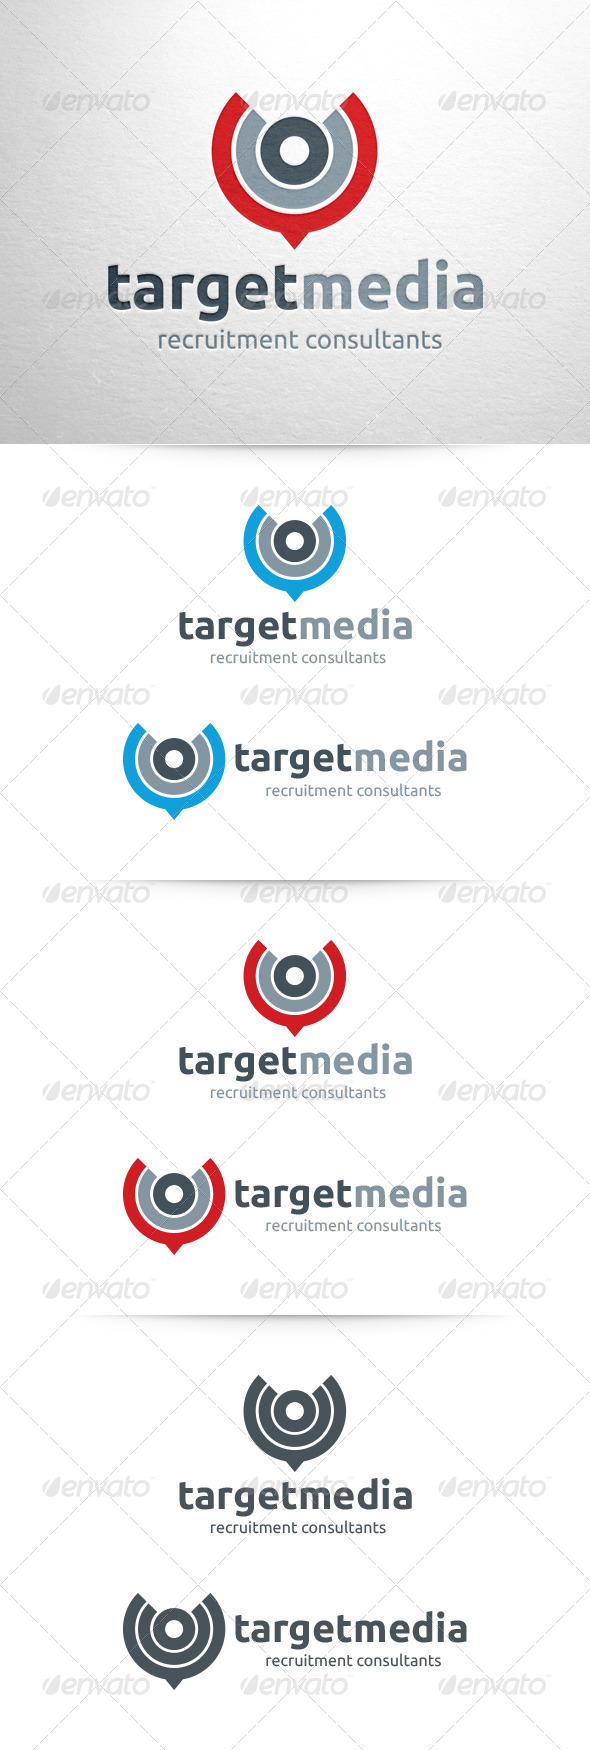 GraphicRiver Target Media Logo Template 6421075